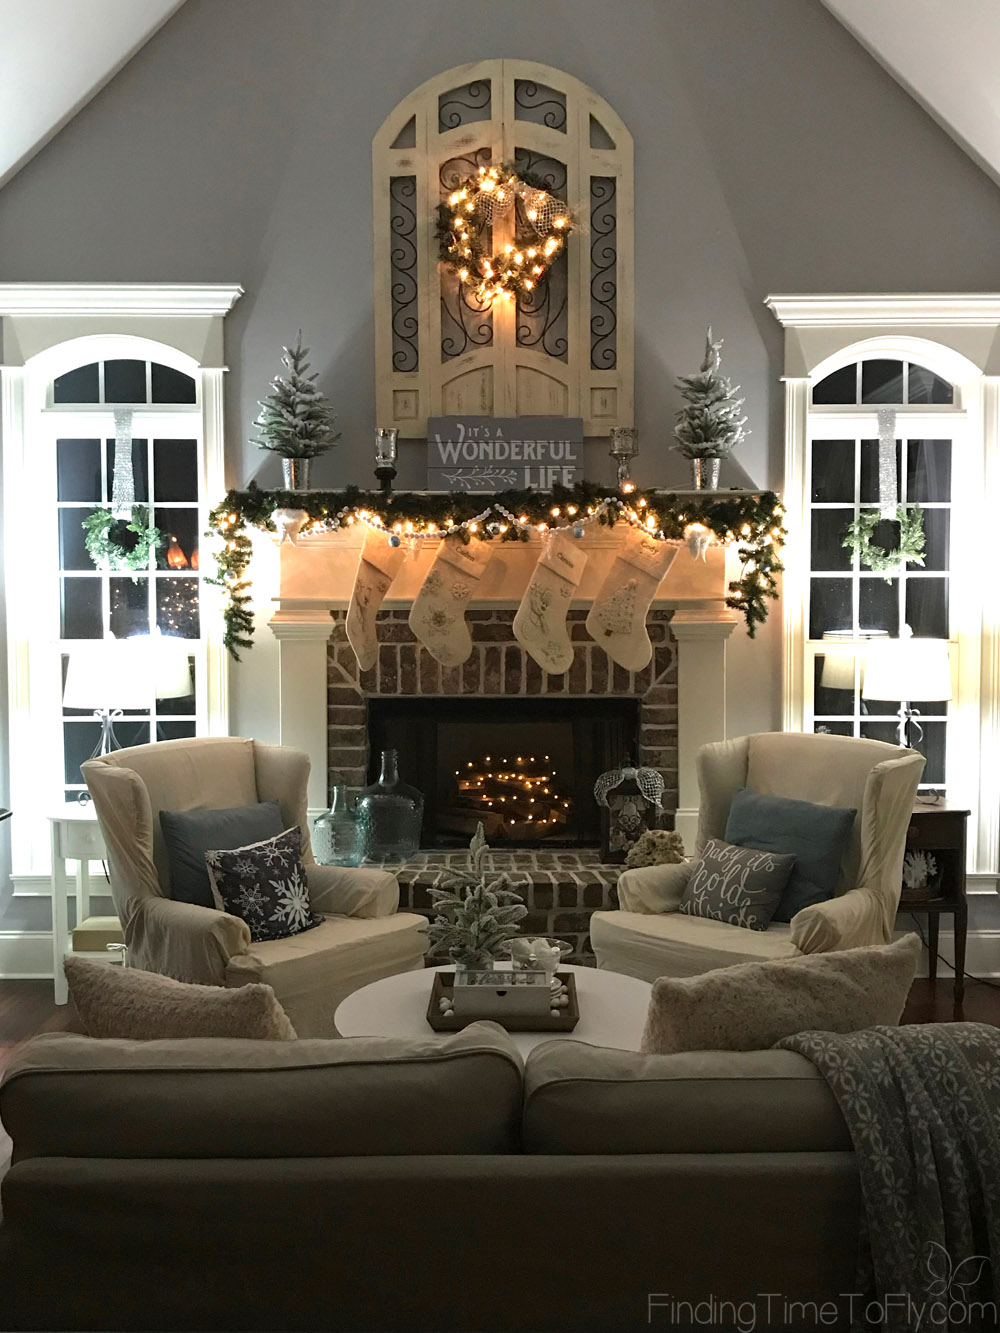 A gorgeous Keeping Room decorated for Christmas in the theme of It's a Wonderful Life with shades of gray, soft whites, jingle bells, angel wings, and snow.